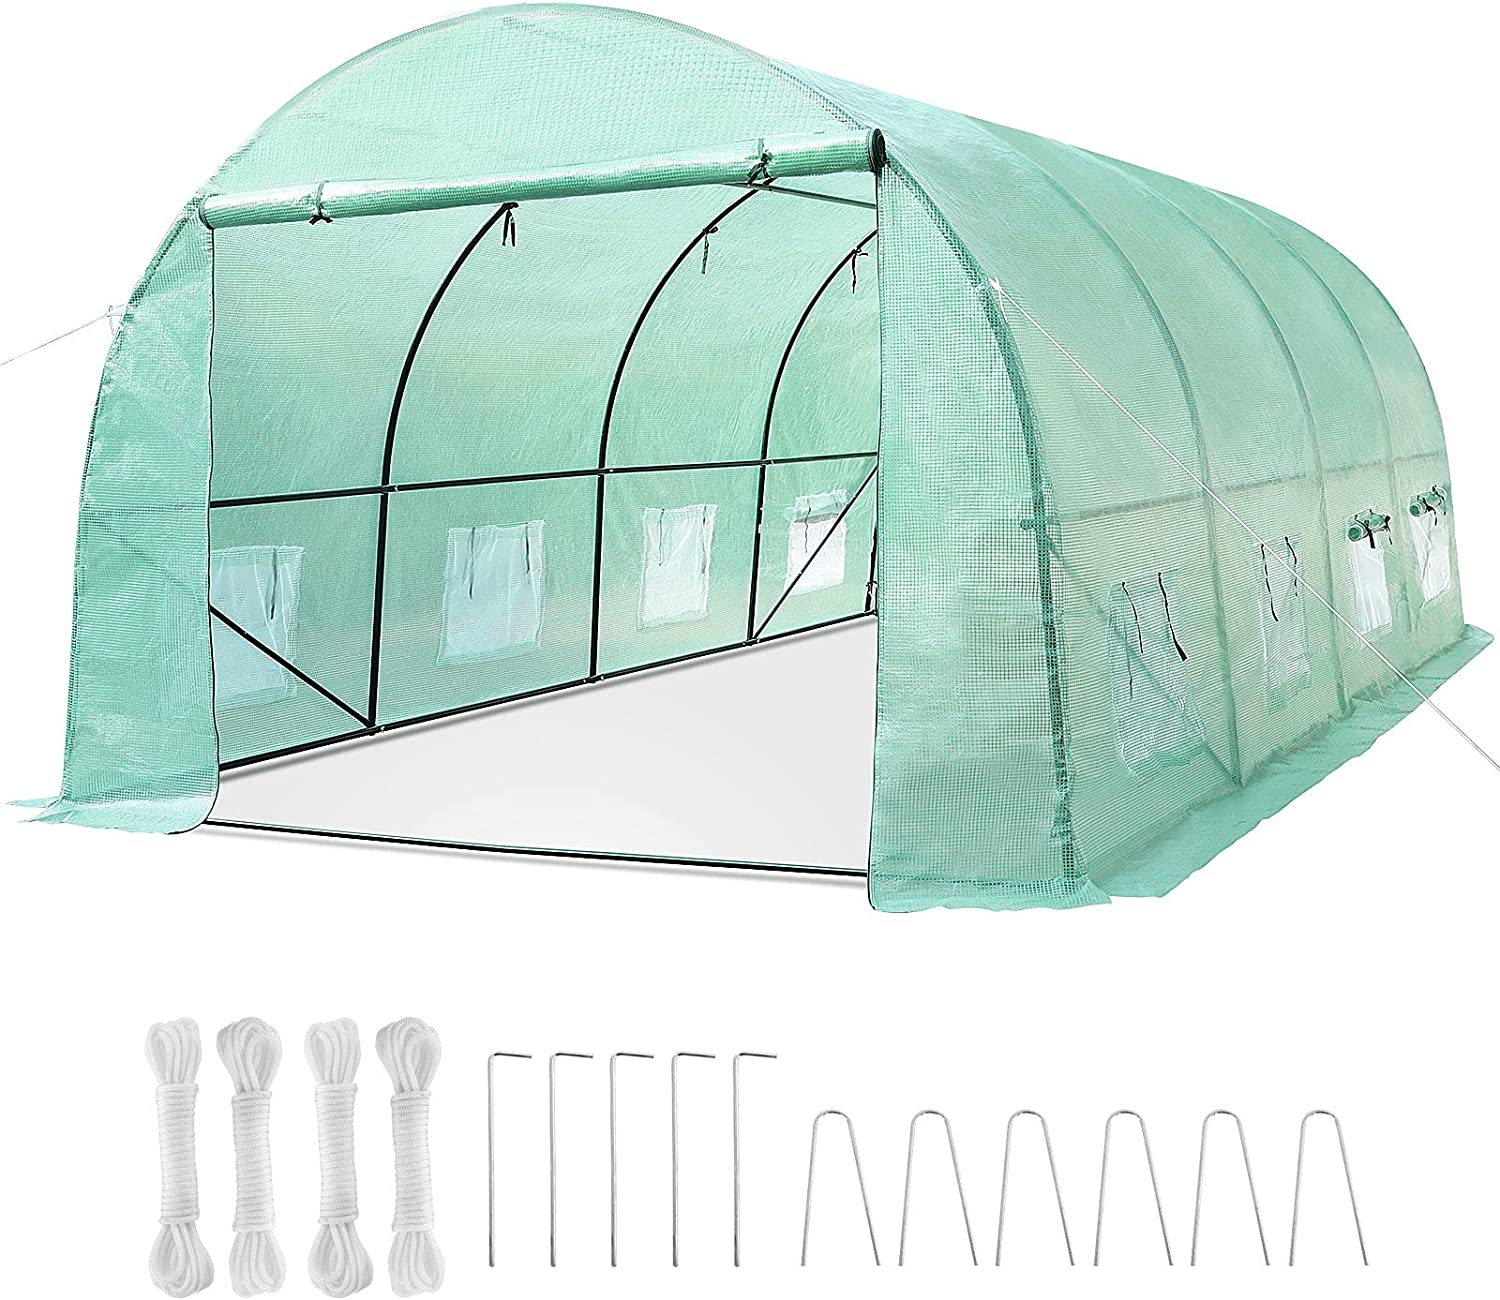 GARTIO 20x10x7FT Upgraded Large Walk in Greenhouse Outdoor Hot Tunnel Tent Gardening Grow House for Plants W/ Dual-Zipper Mesh Doors, 8 Roll-Up Windows, Galvanized-Steel Frame, Ropes & Ground Staples